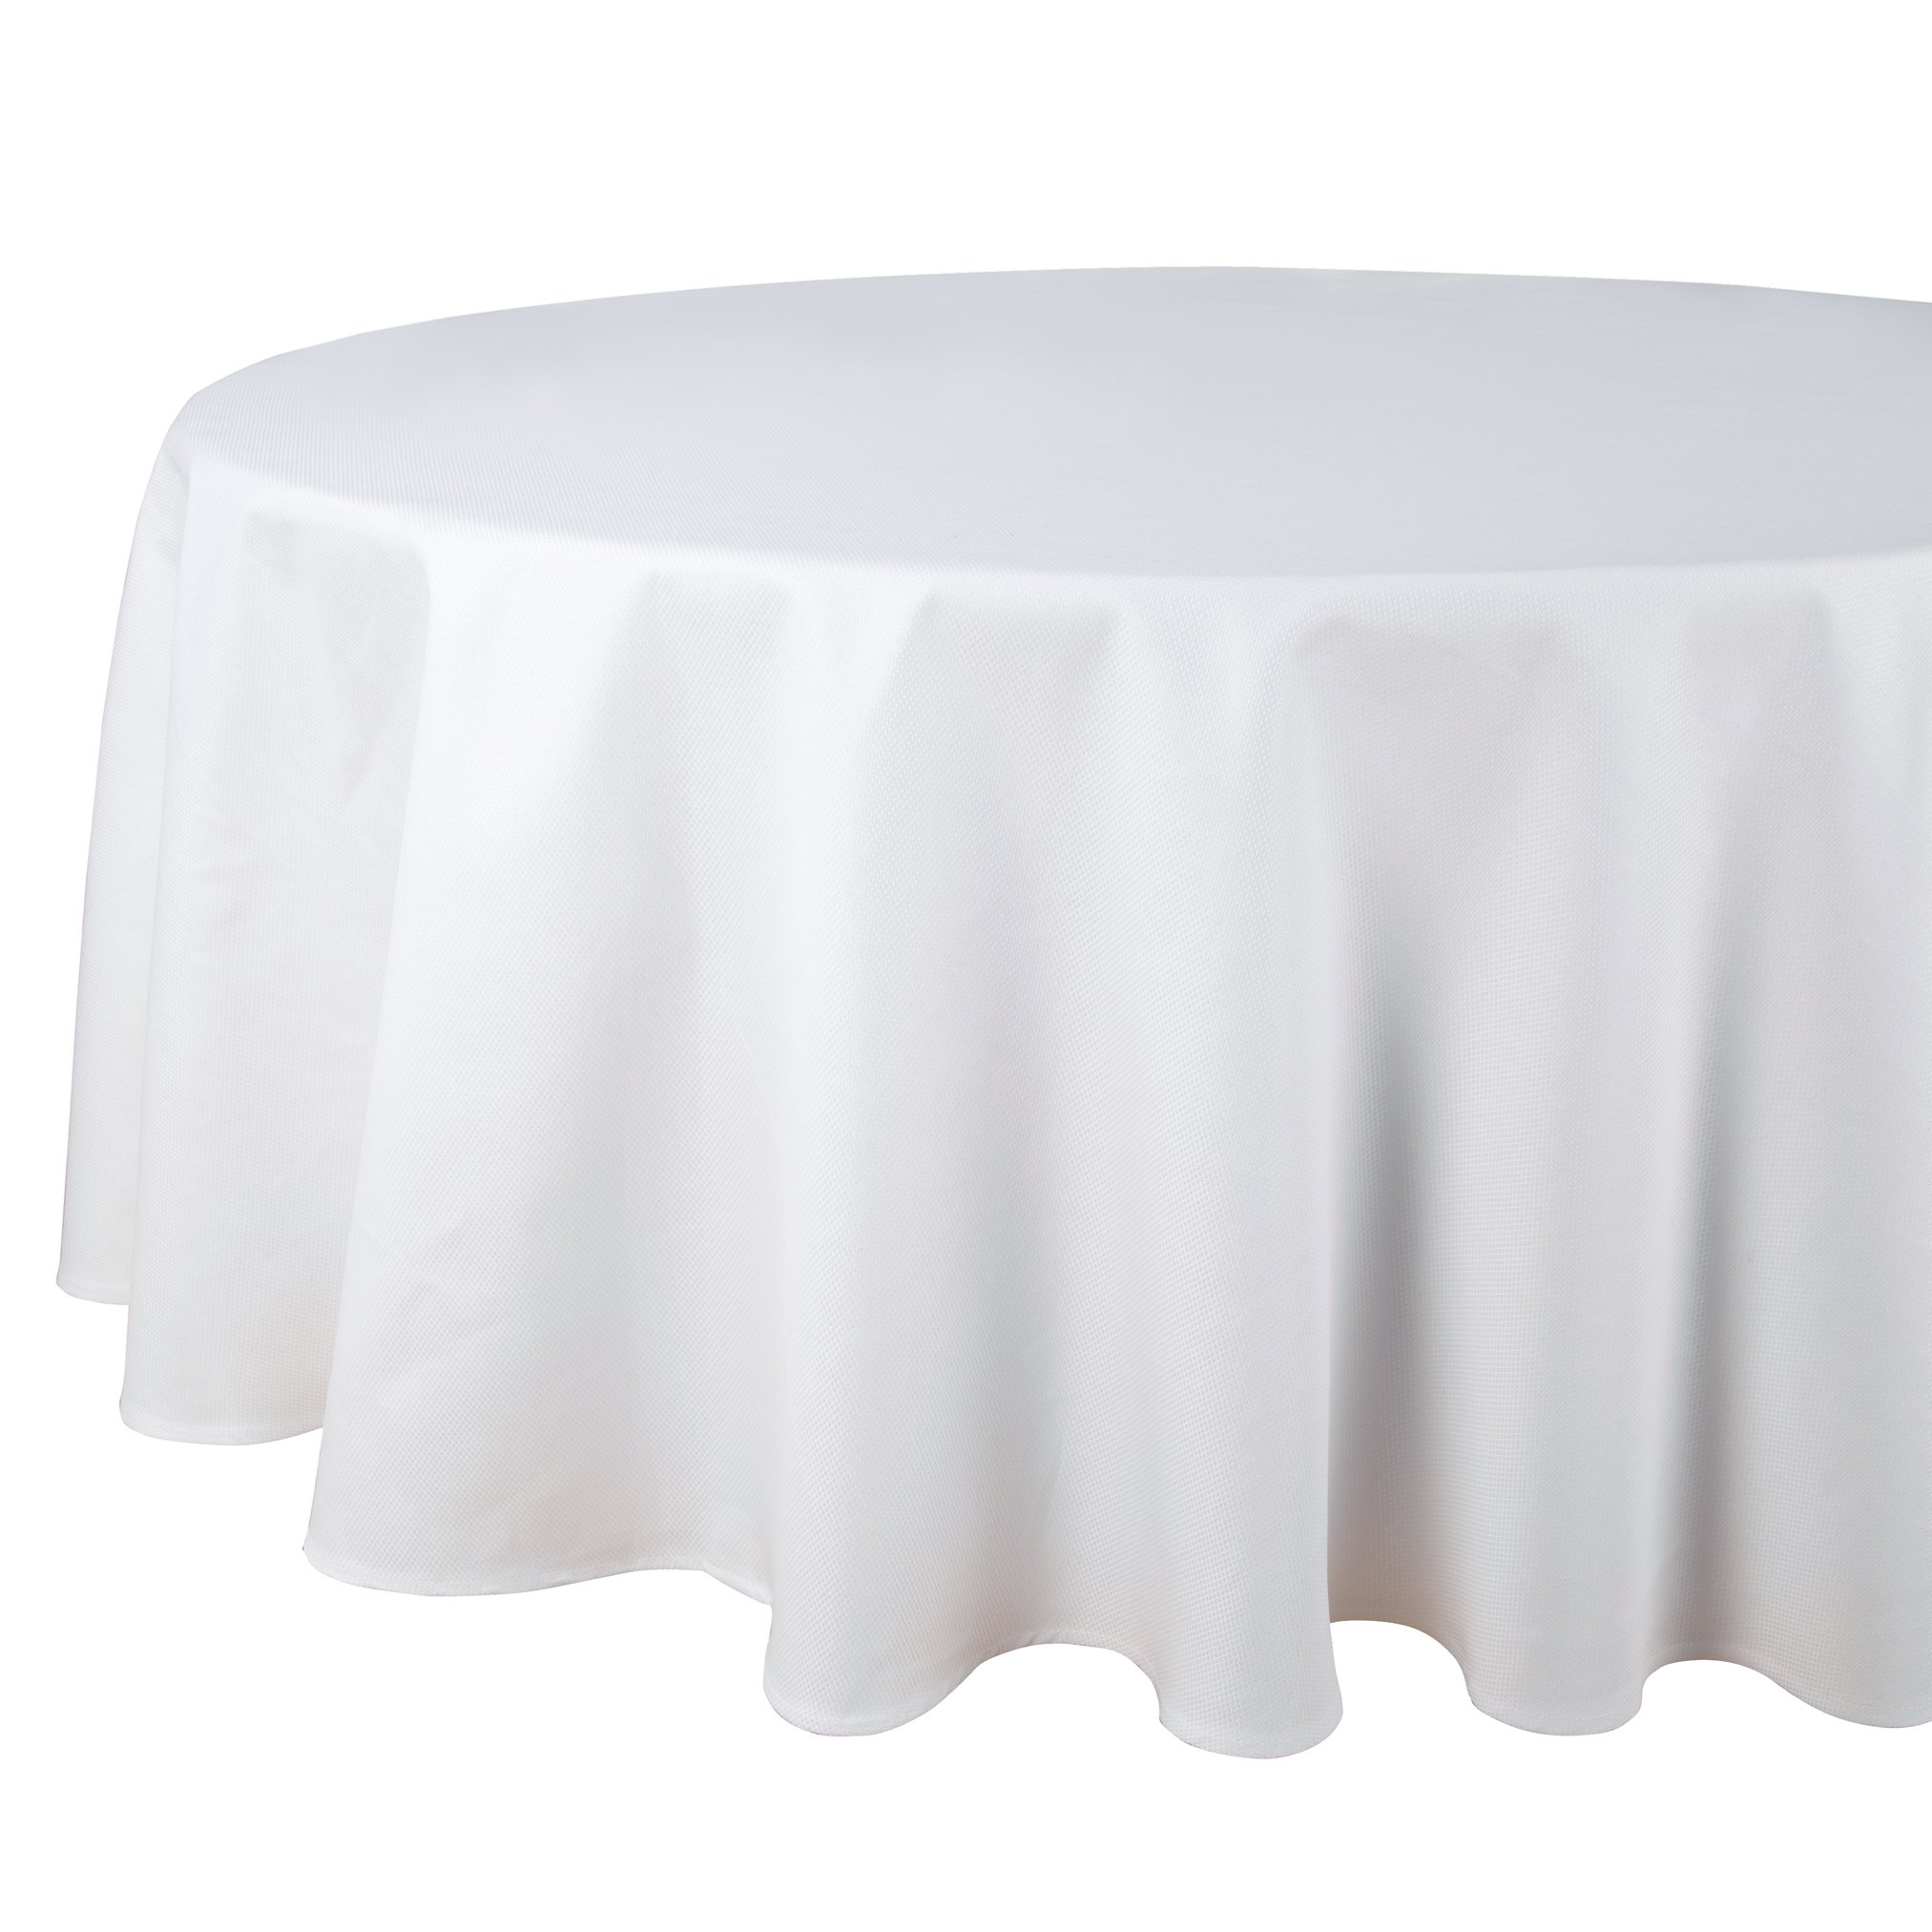 Riegel DPA-90RD-WHT Restaurant Series Round Combed Cotton Pique Tablecloth, 90-Inch, White